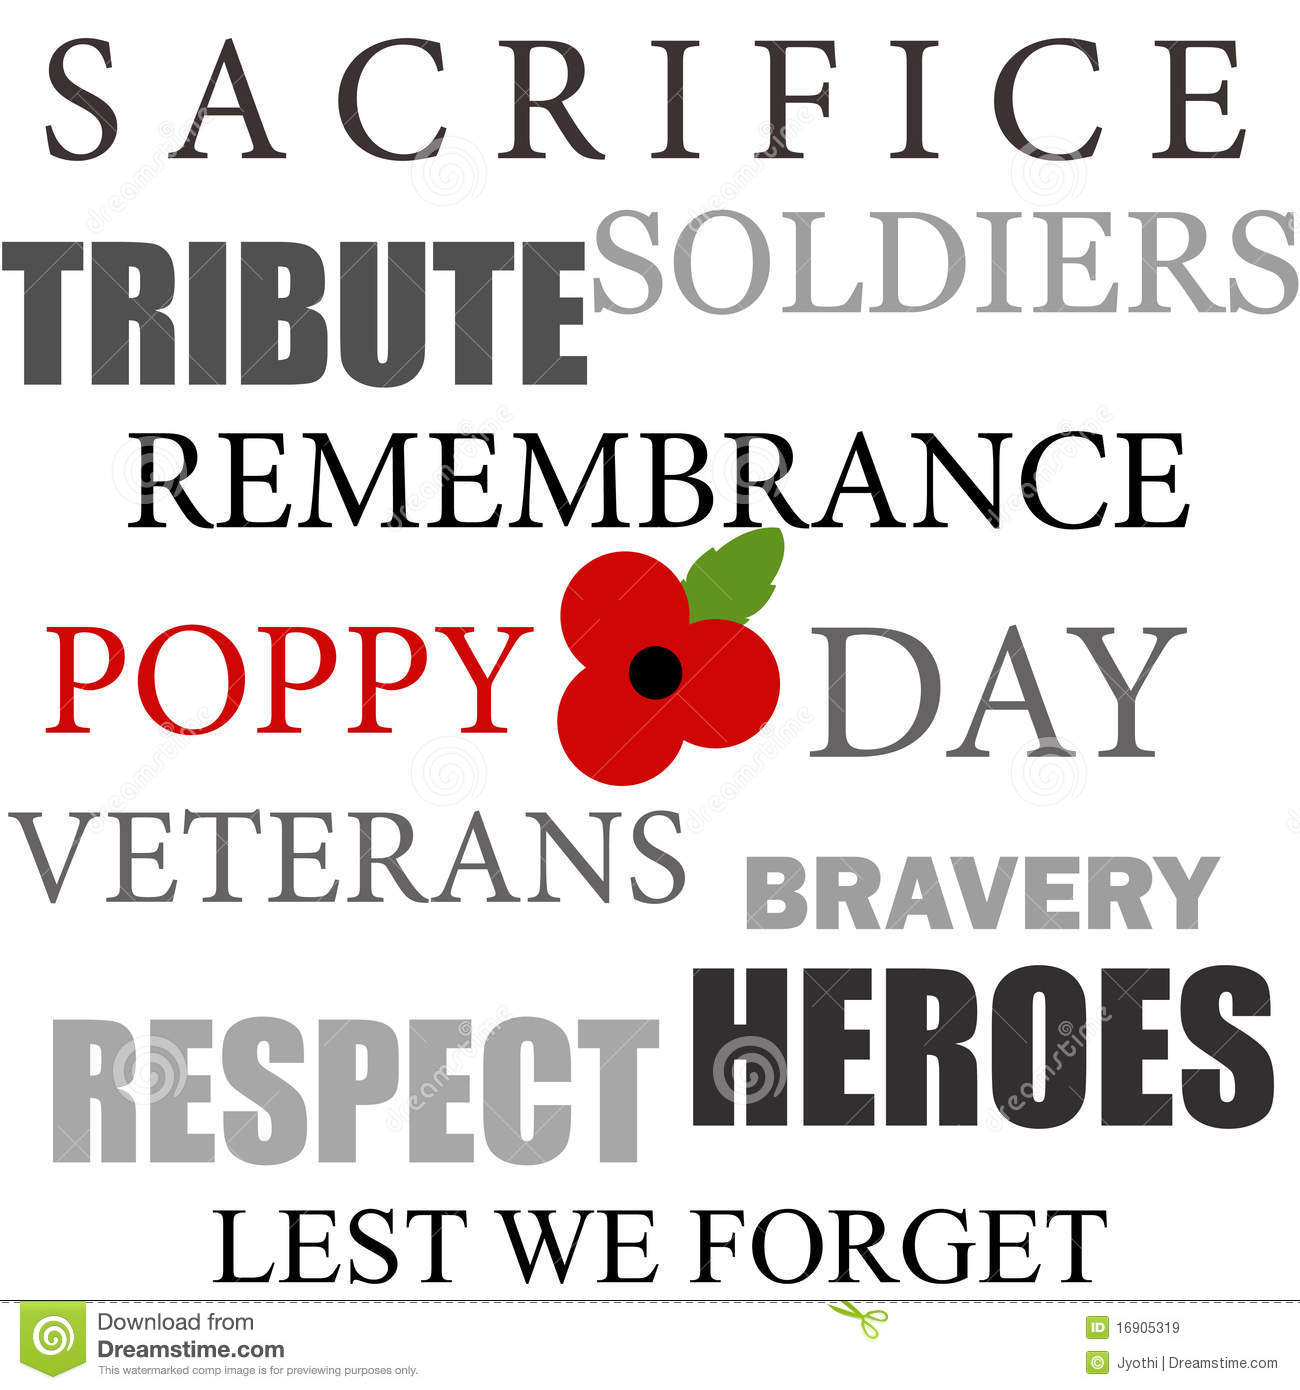 Introduction - Remembrance Day (7-12) - LibGuides at Upper Canada